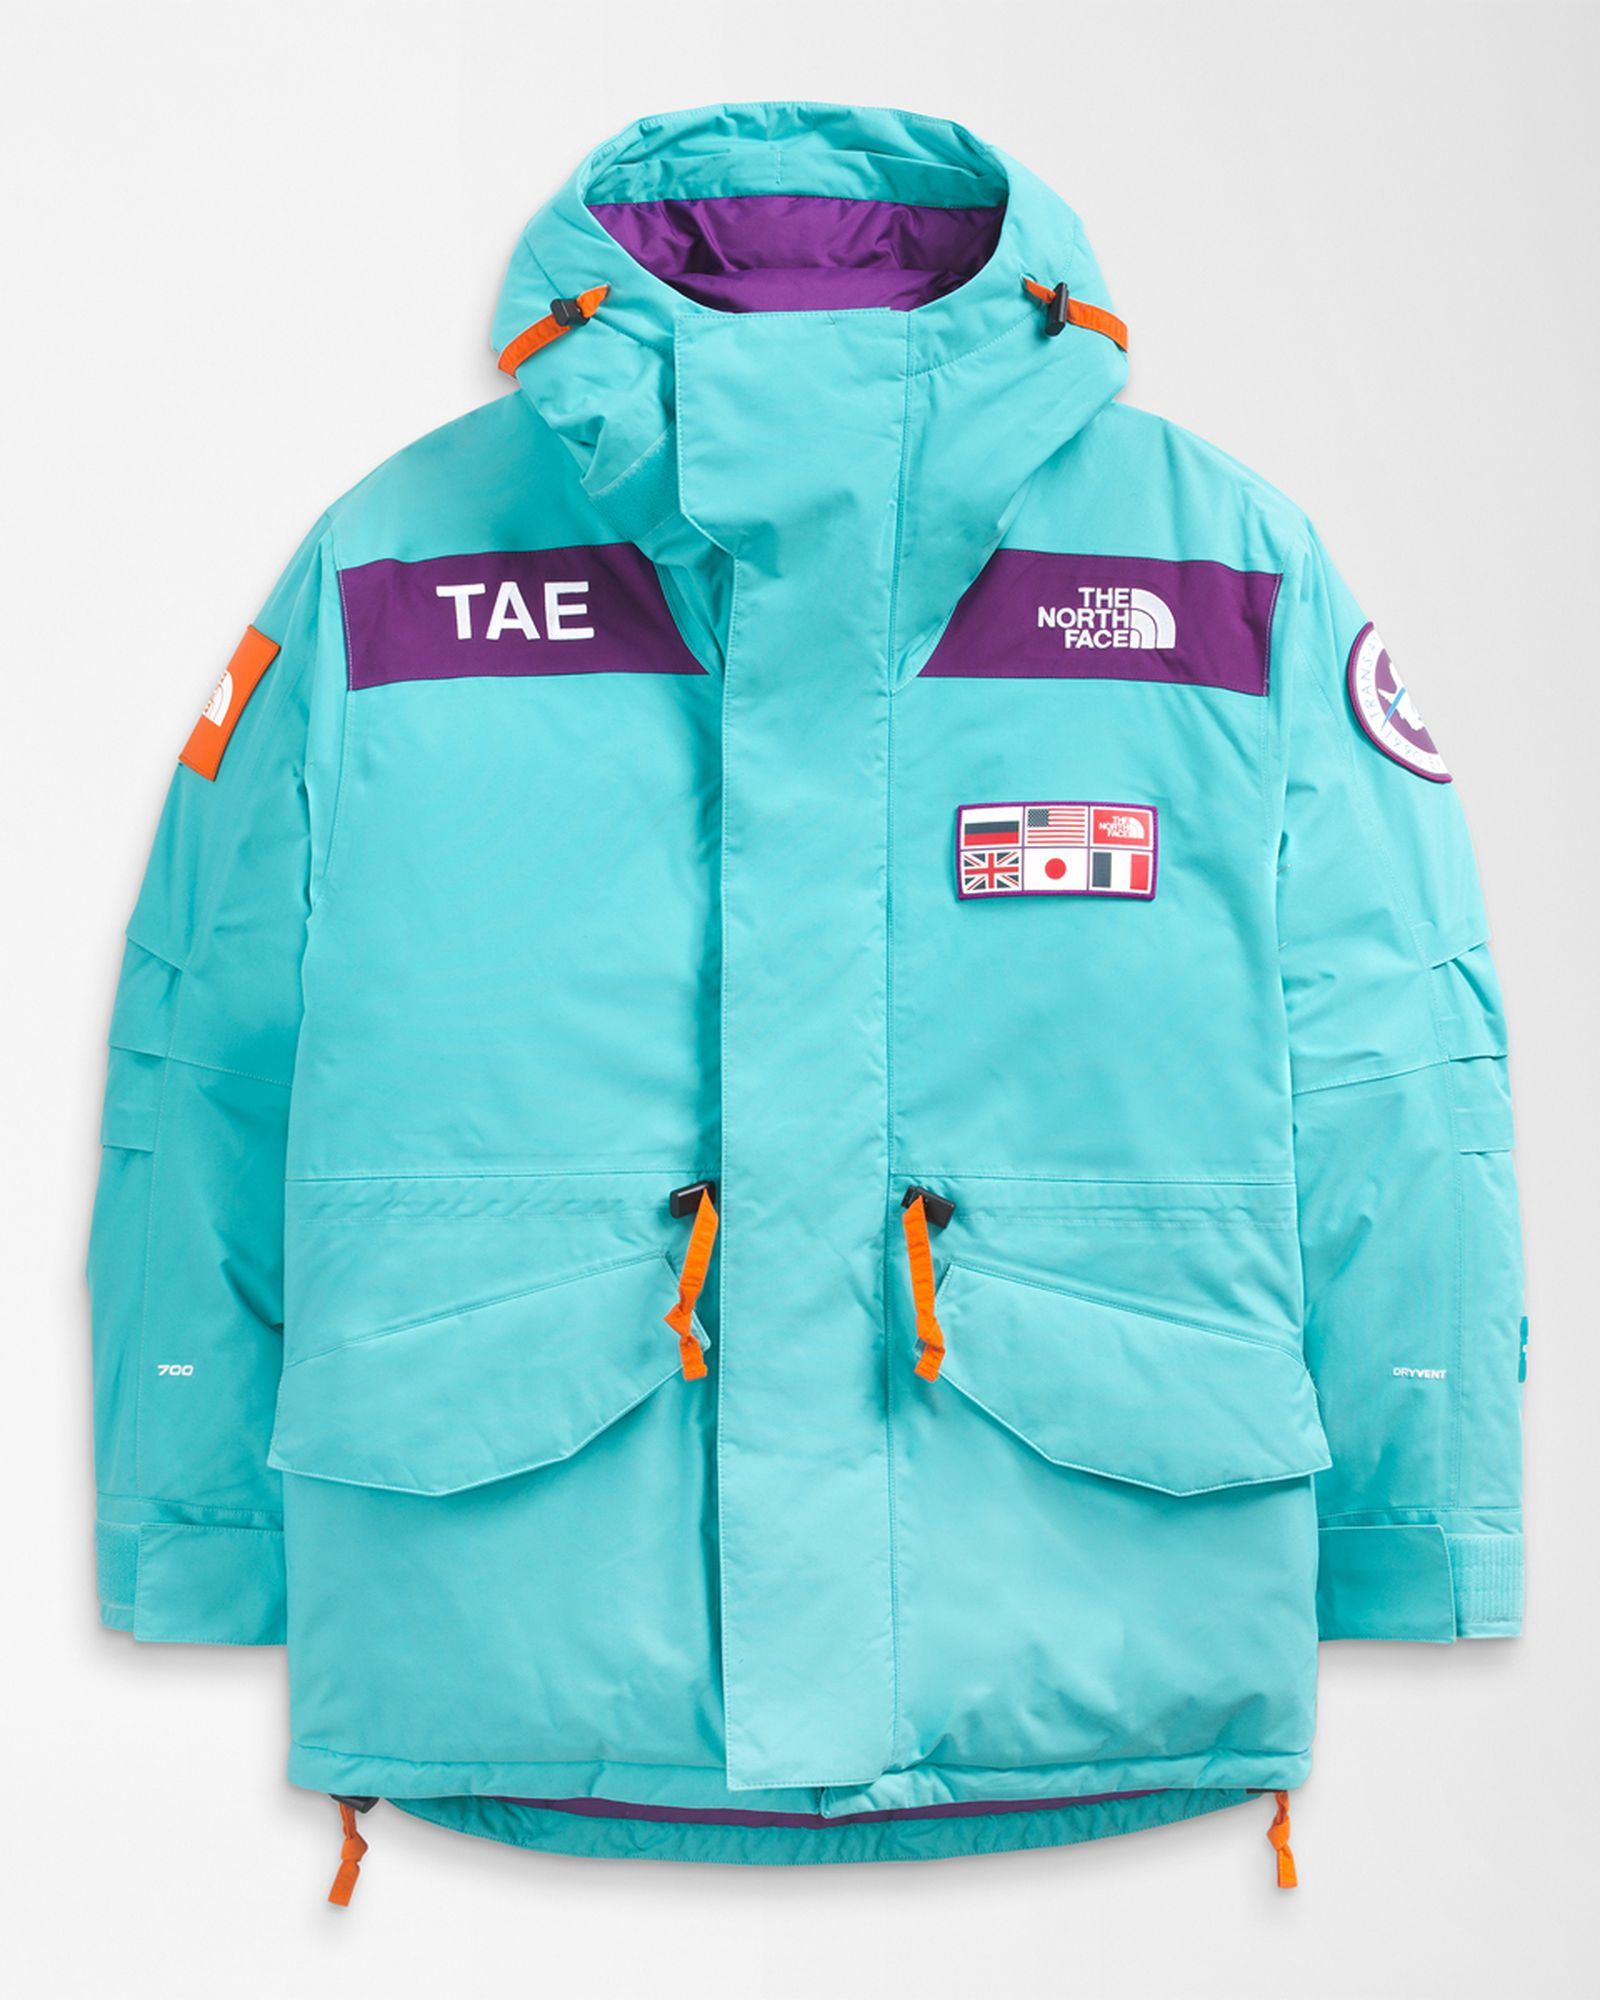 the-north-face-trans-antarctica-collection (10)